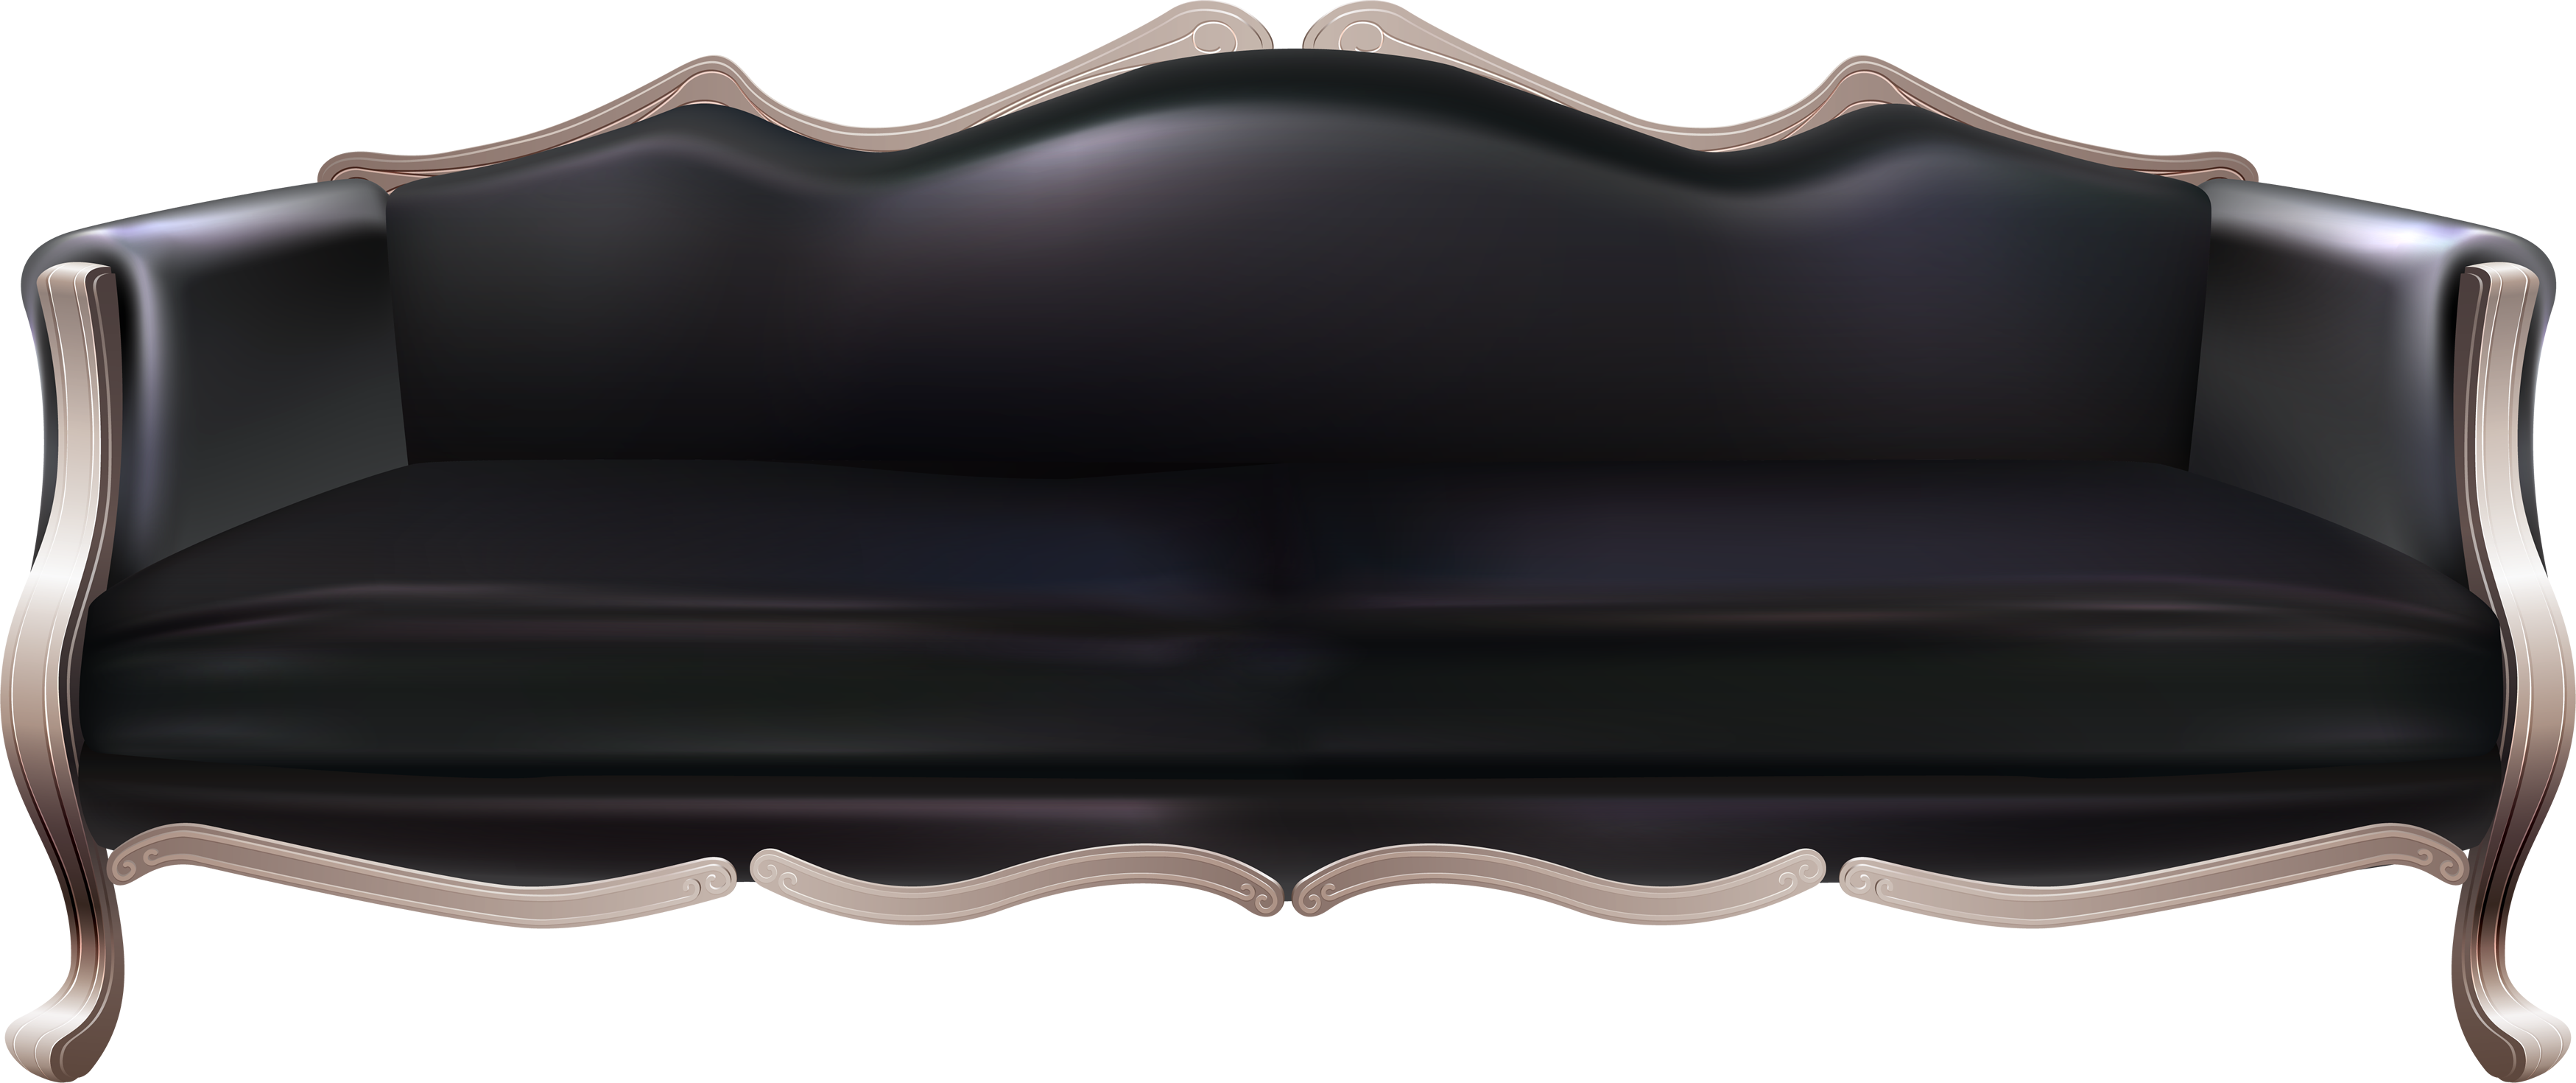 Black couch png. Sofa images free download